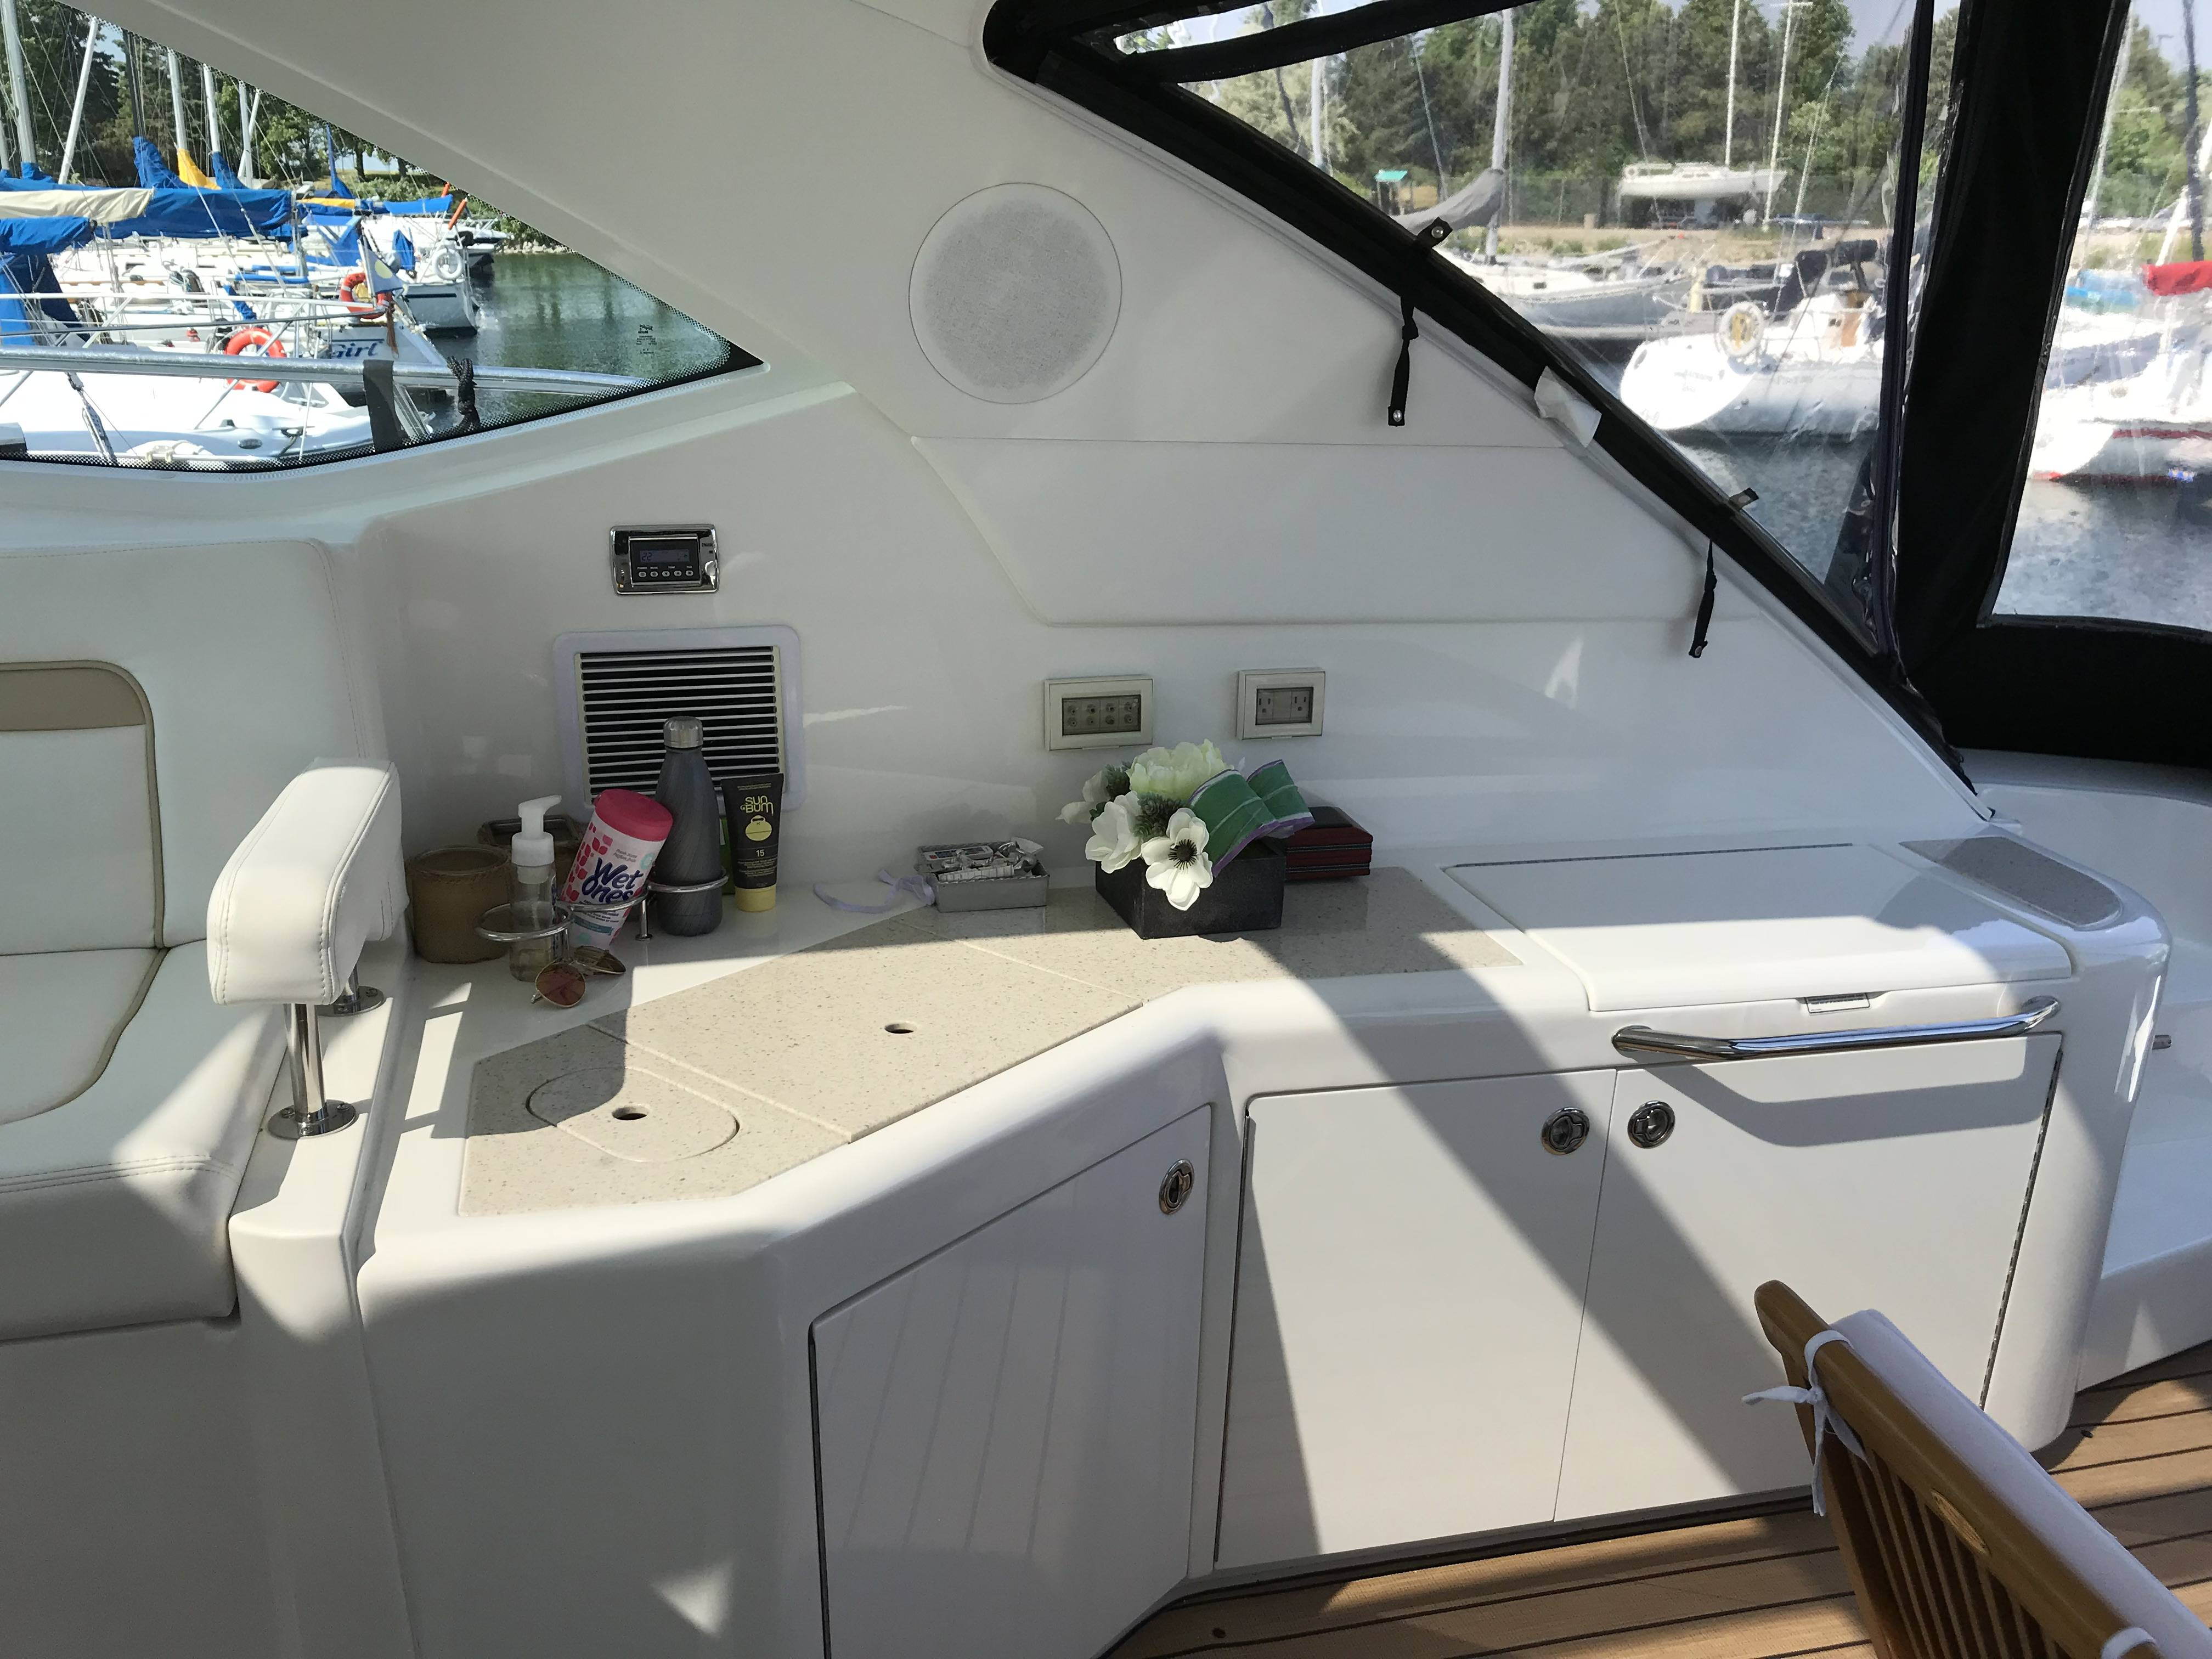 2010 Sea Ray boat for sale, model of the boat is 540 SUNDANCER & Image # 16 of 28